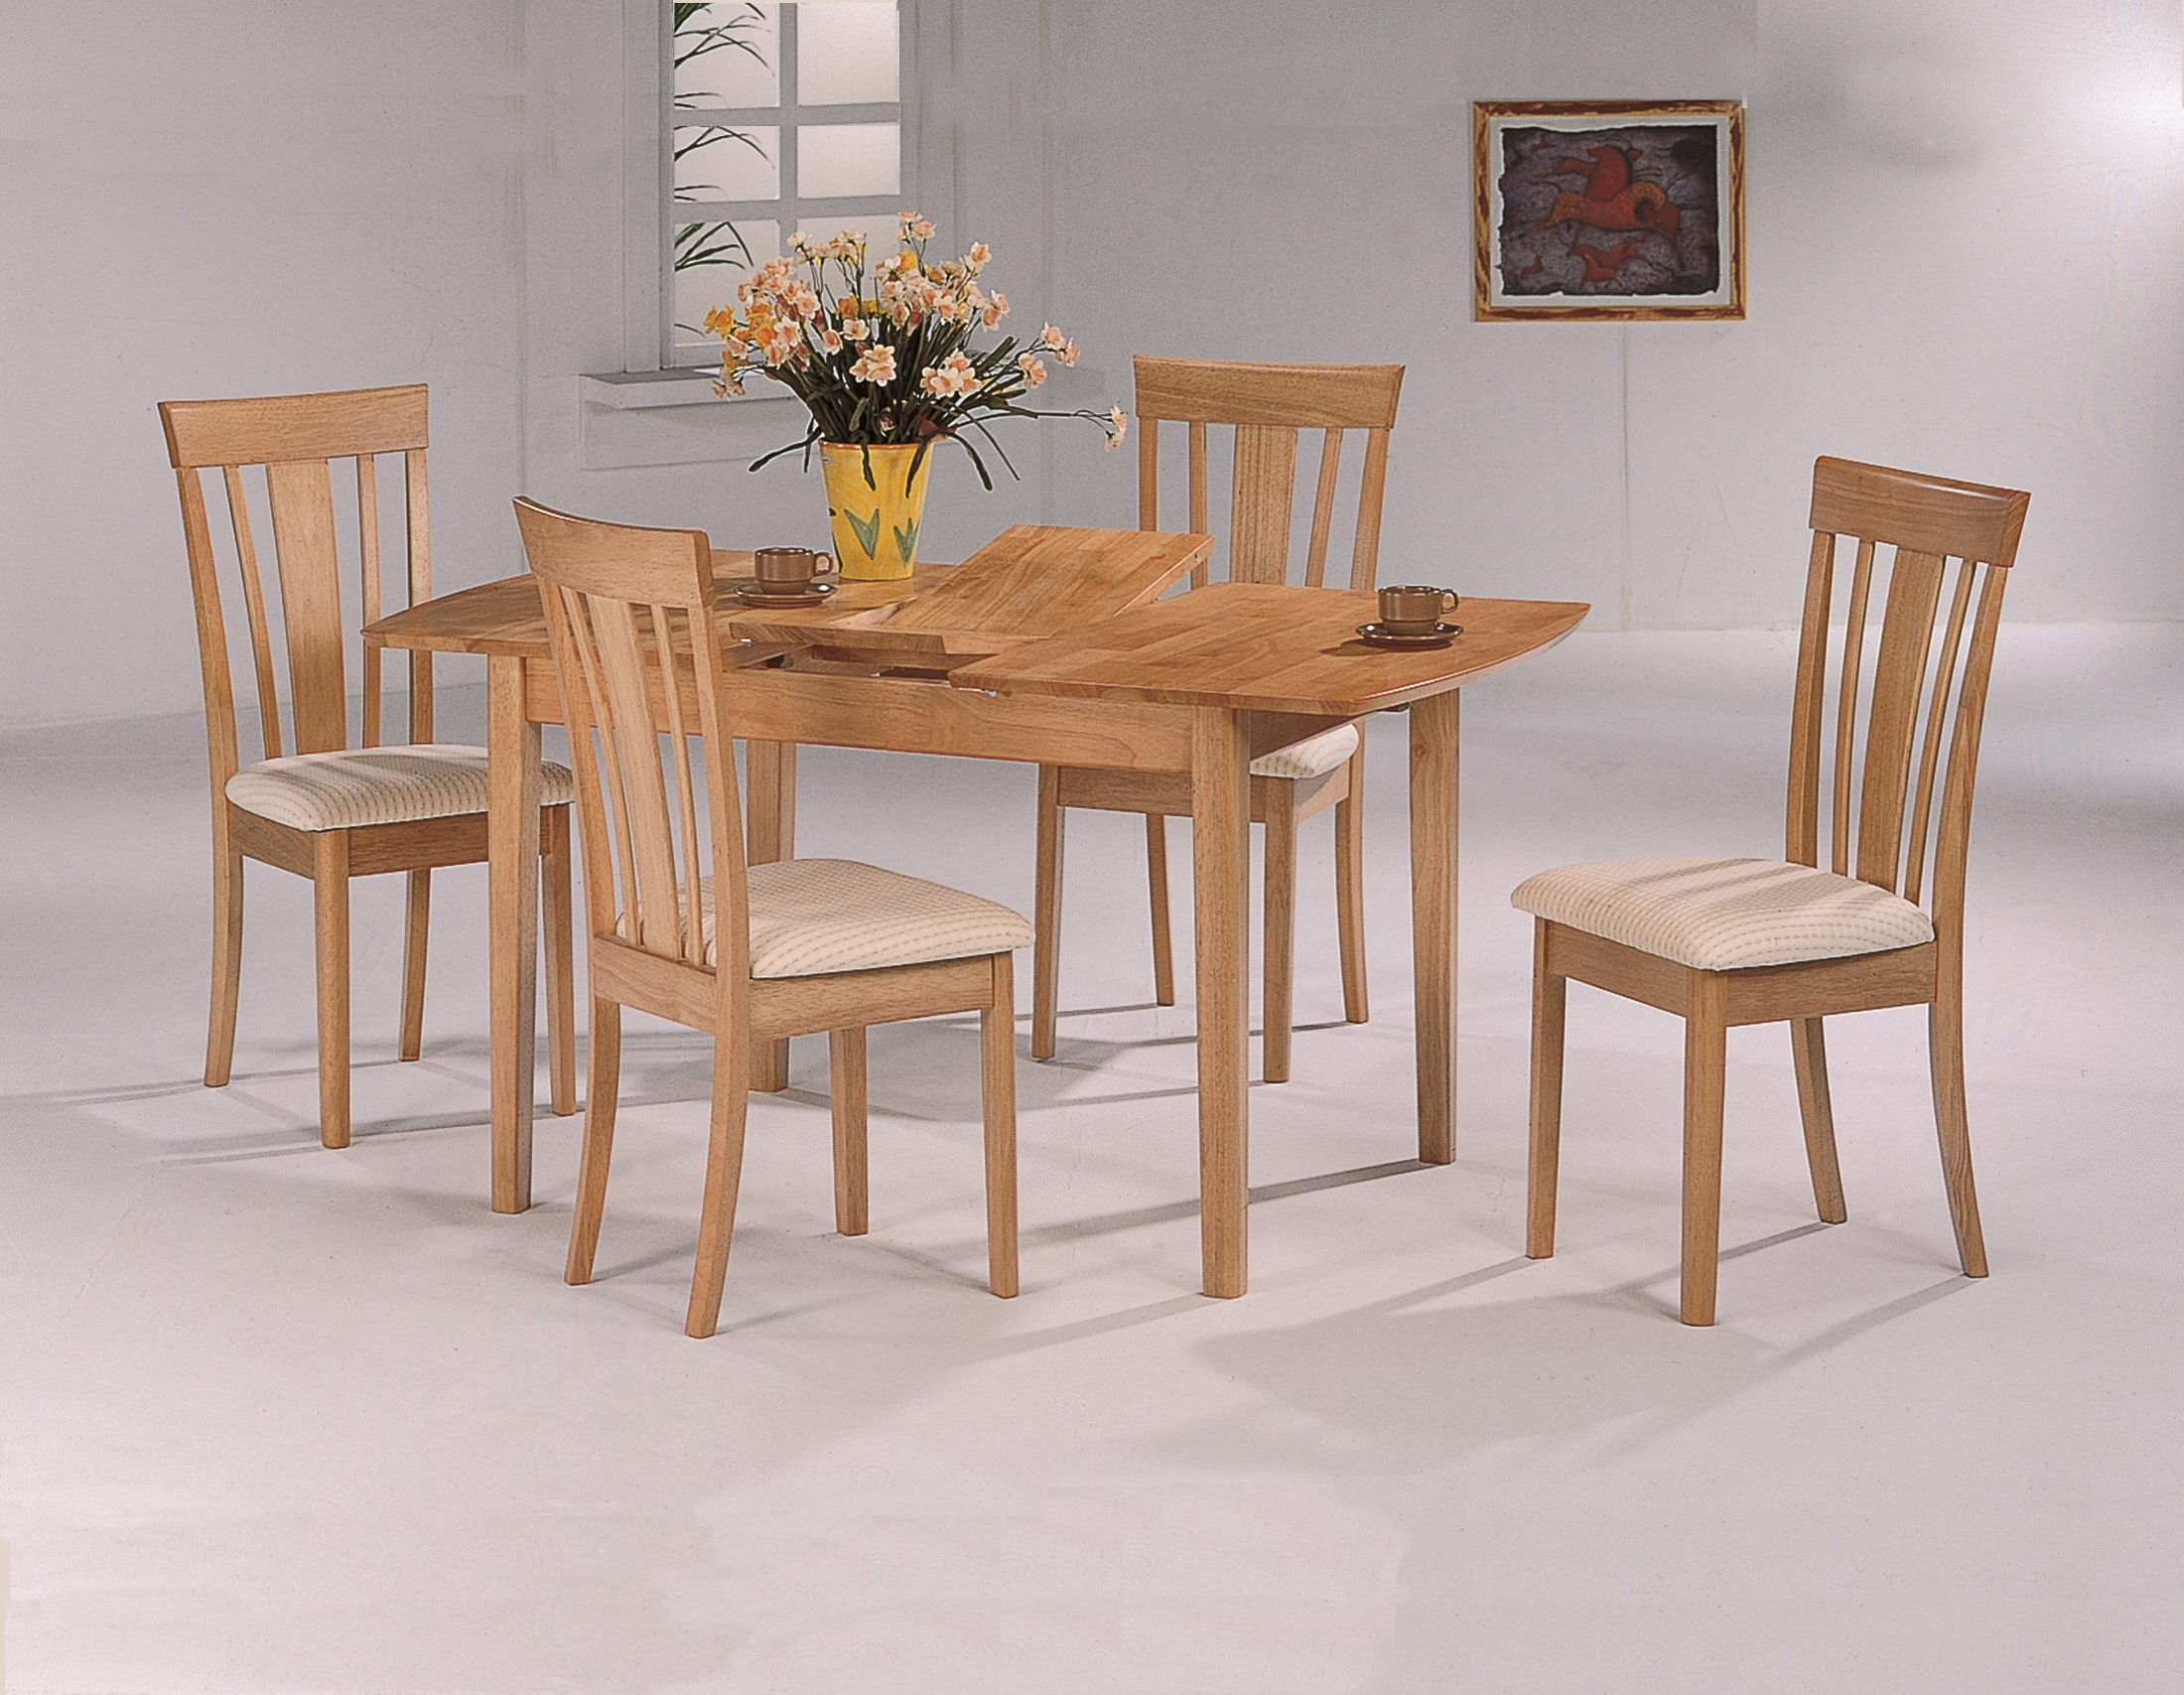 4267 Maple Butterfly Leaf Dining Extendable Room Set 938442 493812 493811